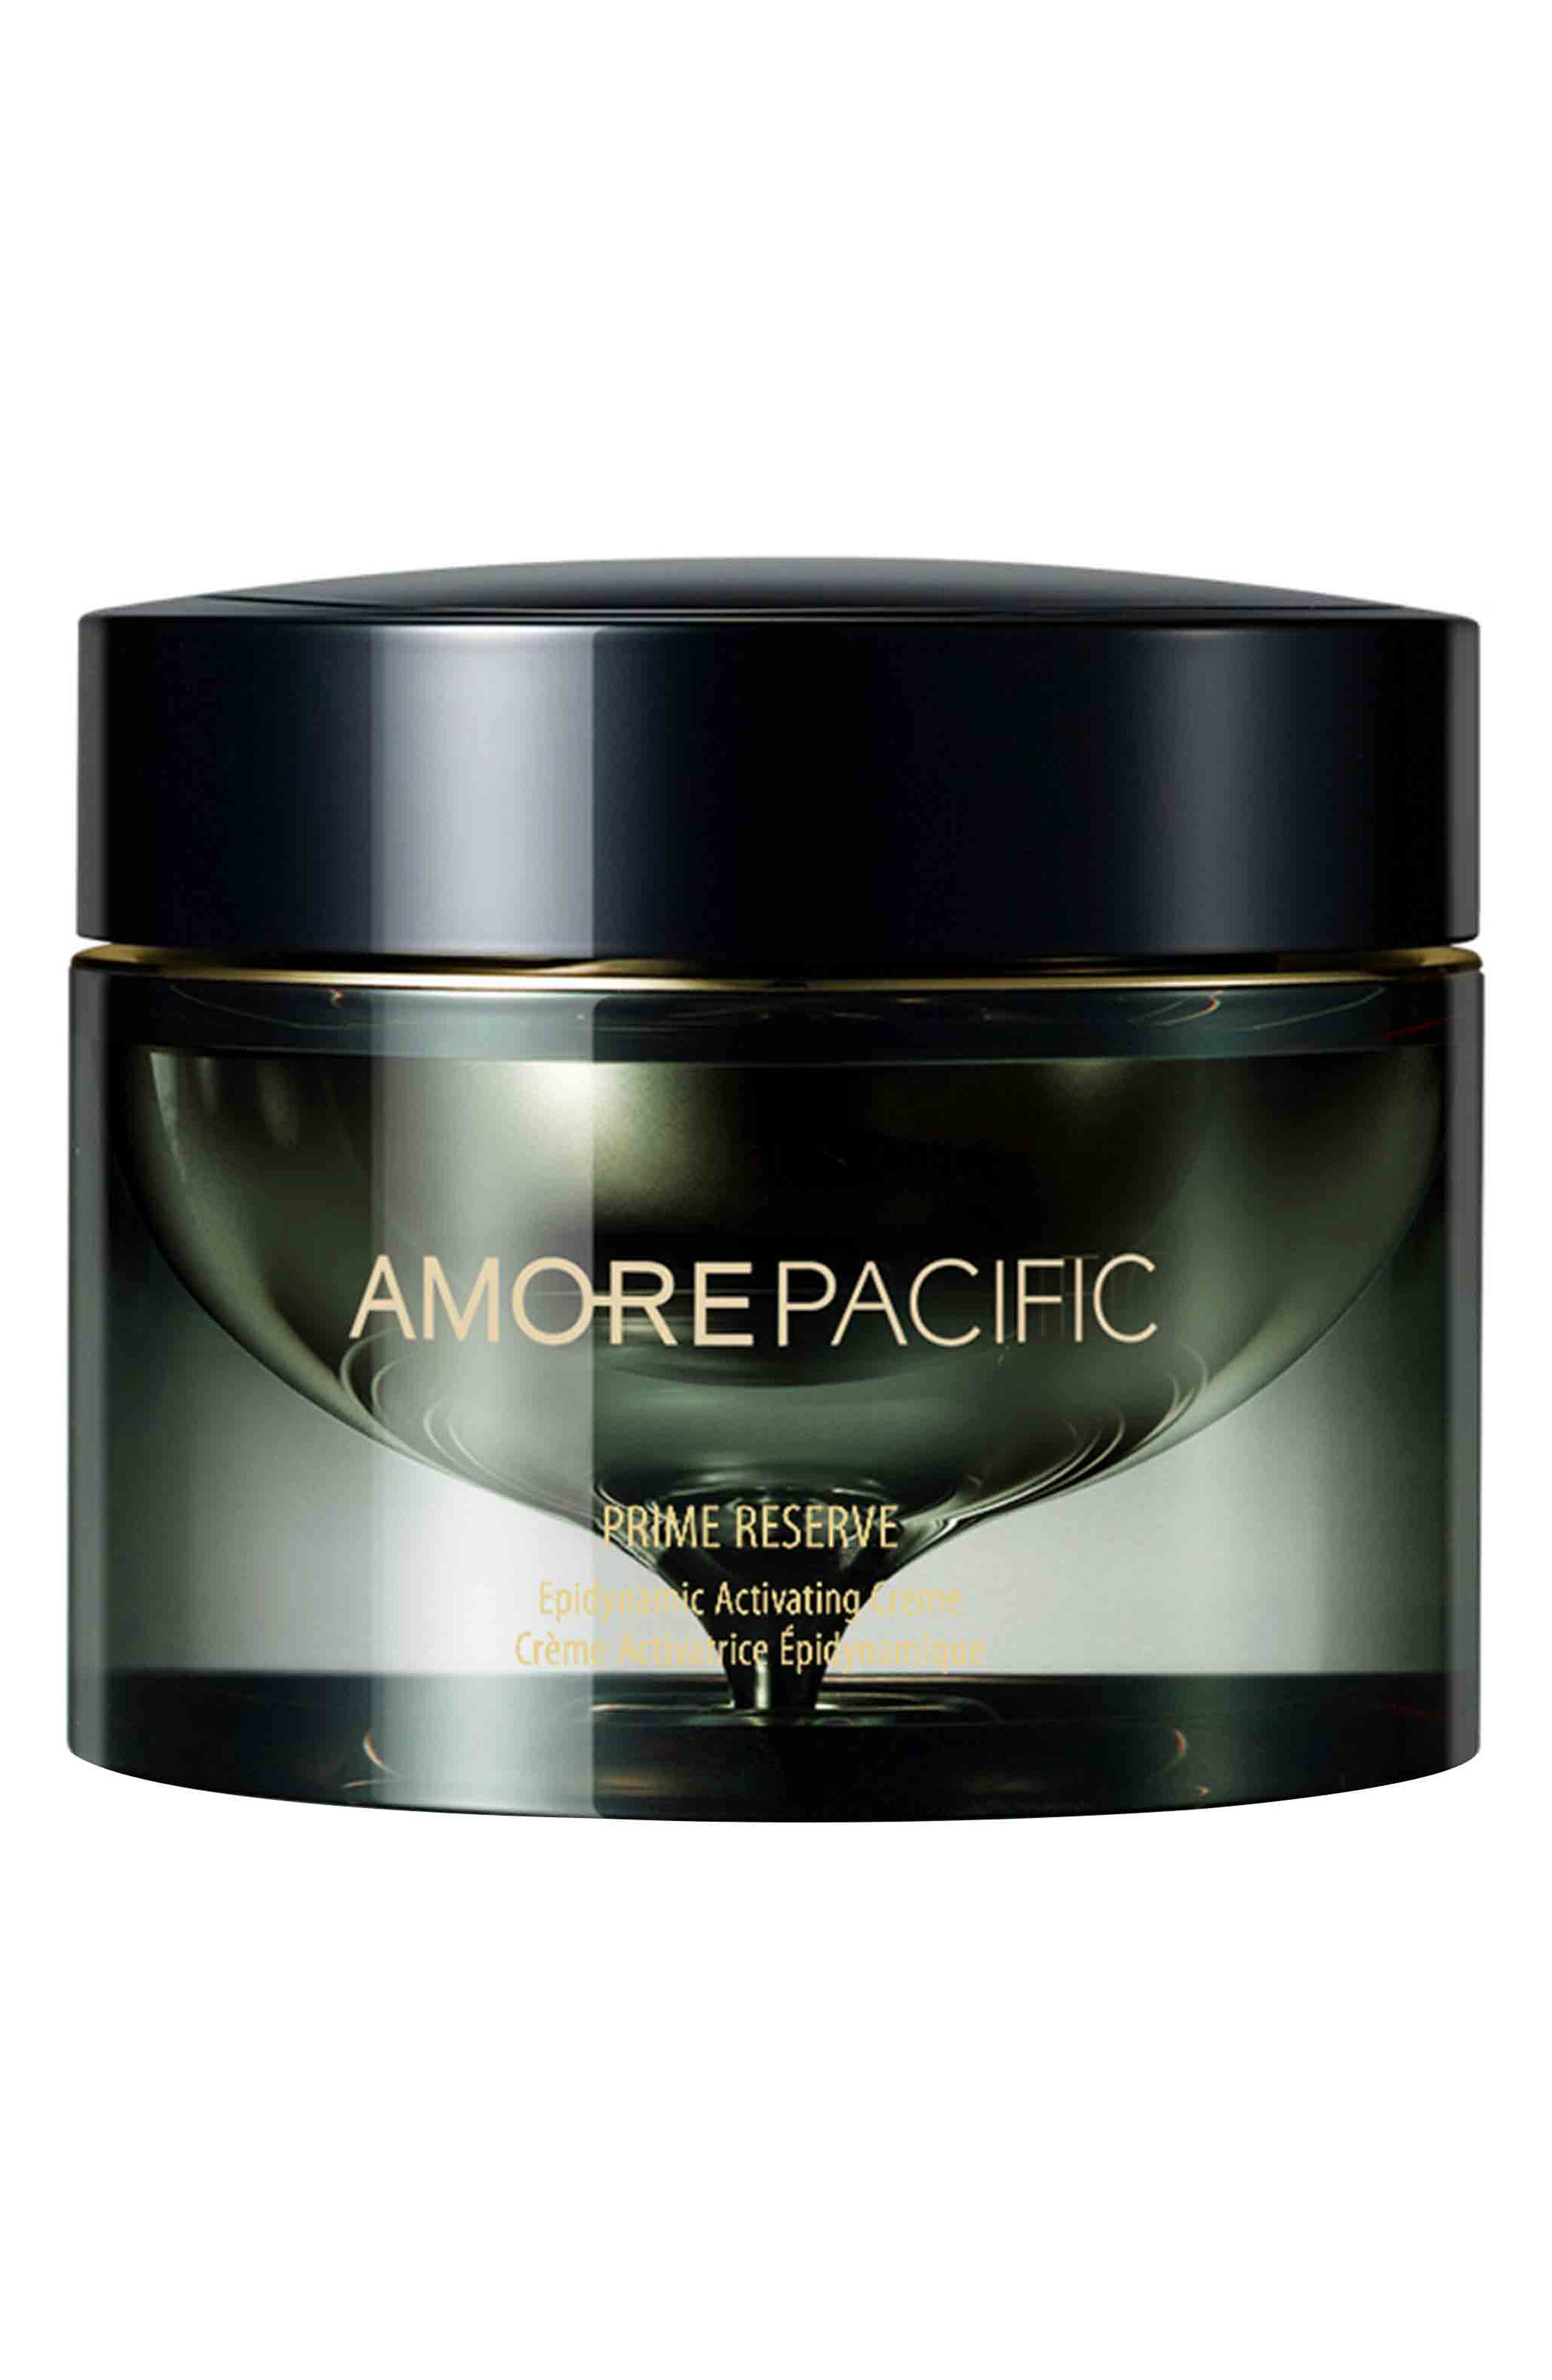 AMOREPACIFIC,                             'Prime Reserve' Epidynamic Activating Creme,                             Main thumbnail 1, color,                             000